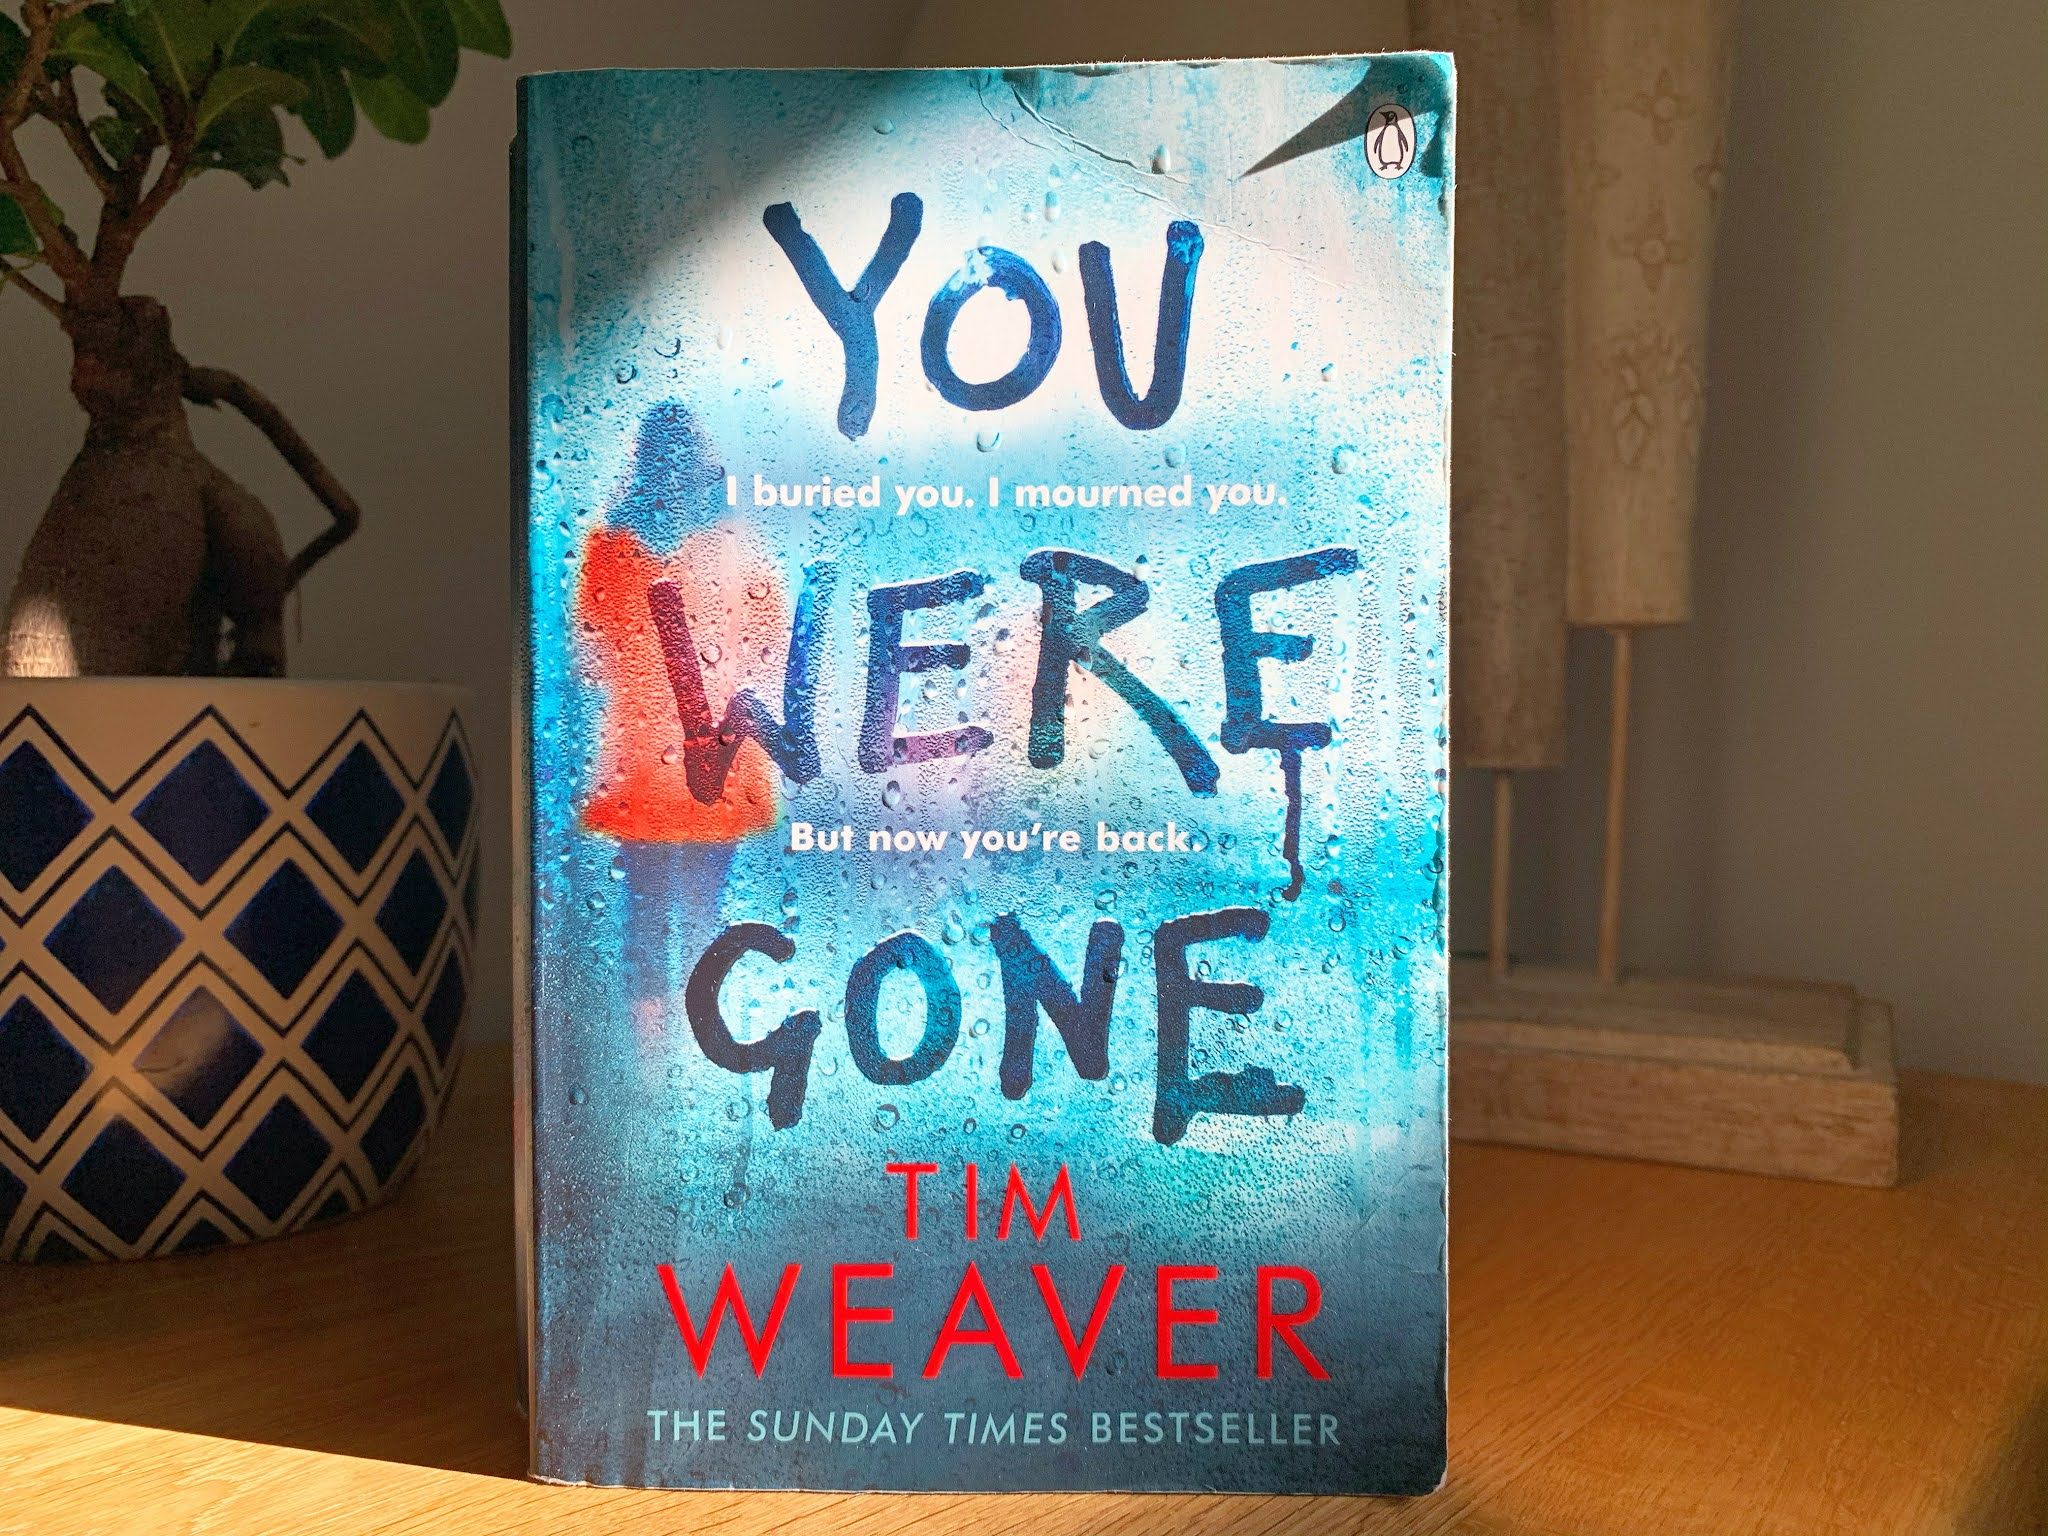 You Were Gone by Tim Weaver on a shelf